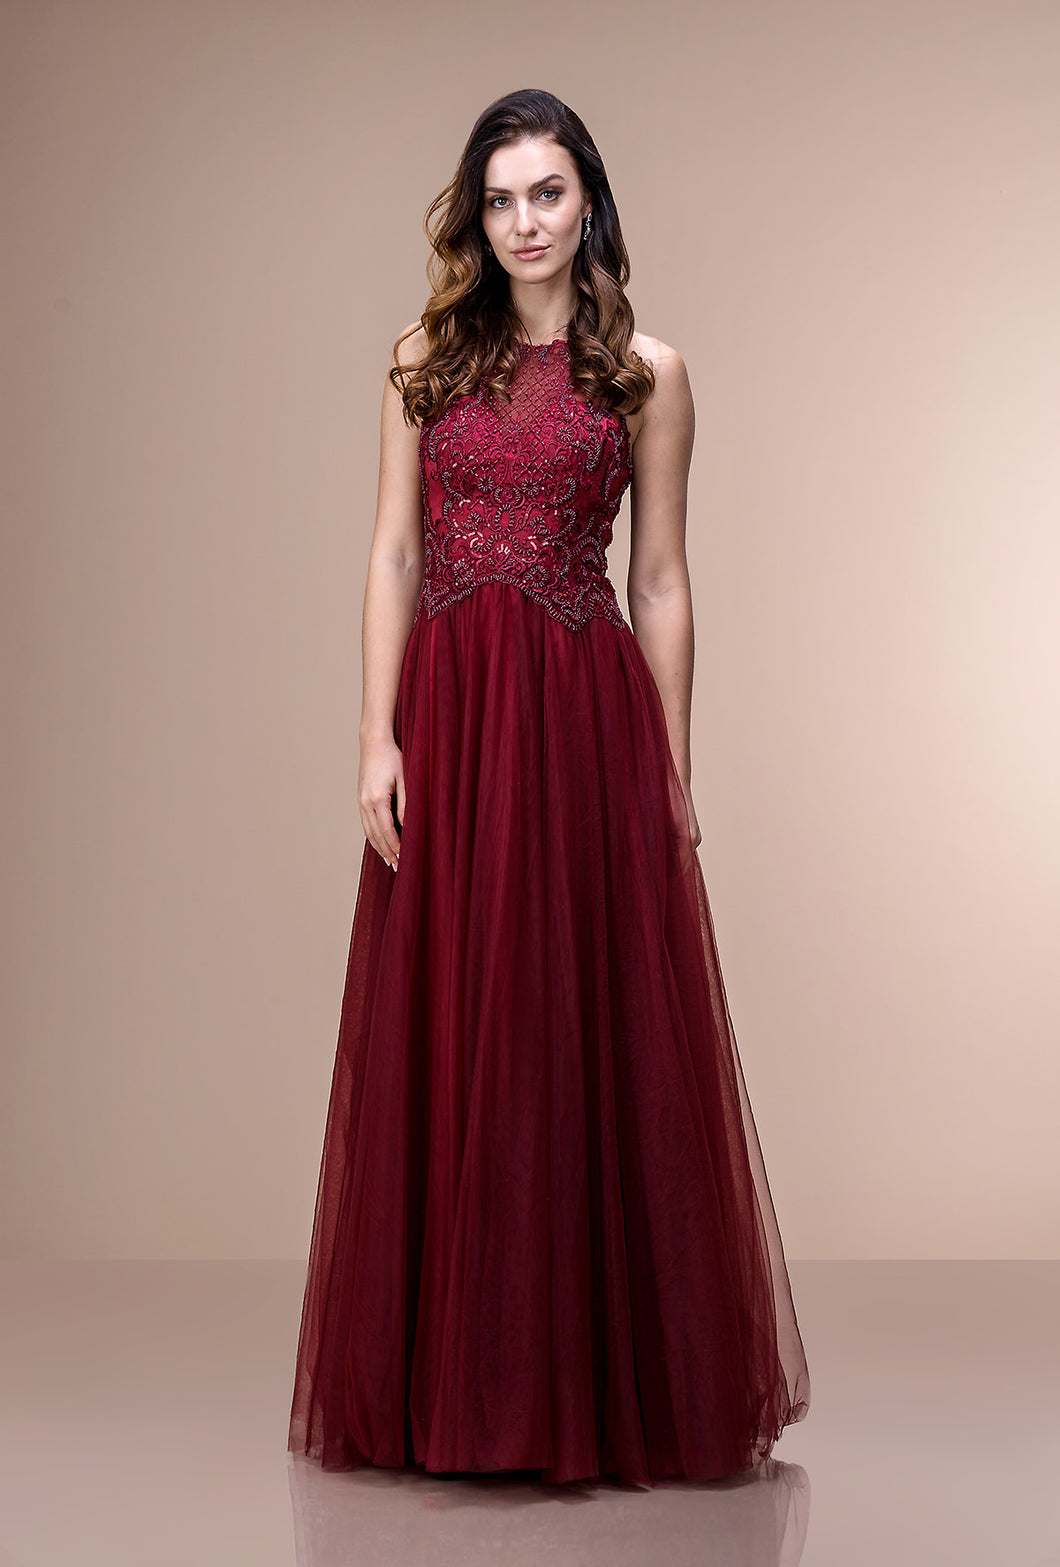 0499 Christian Koehlert | Evening and Prom Dress